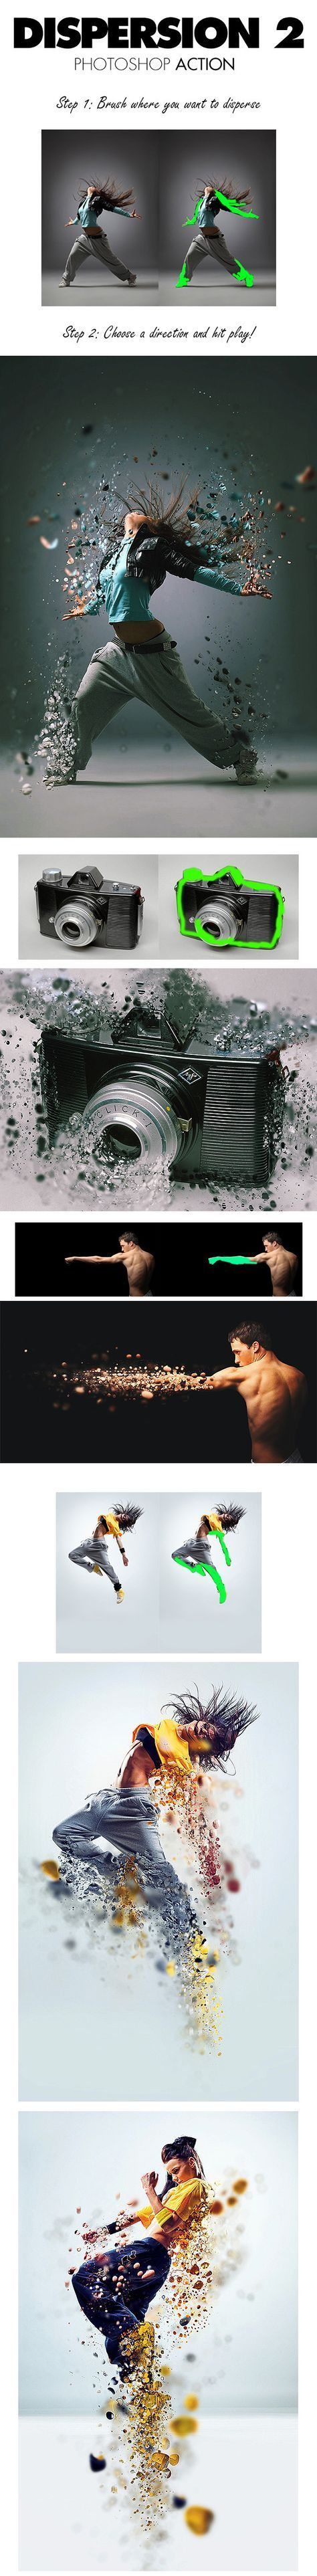 6-Dispersion 2 Photoshop Action